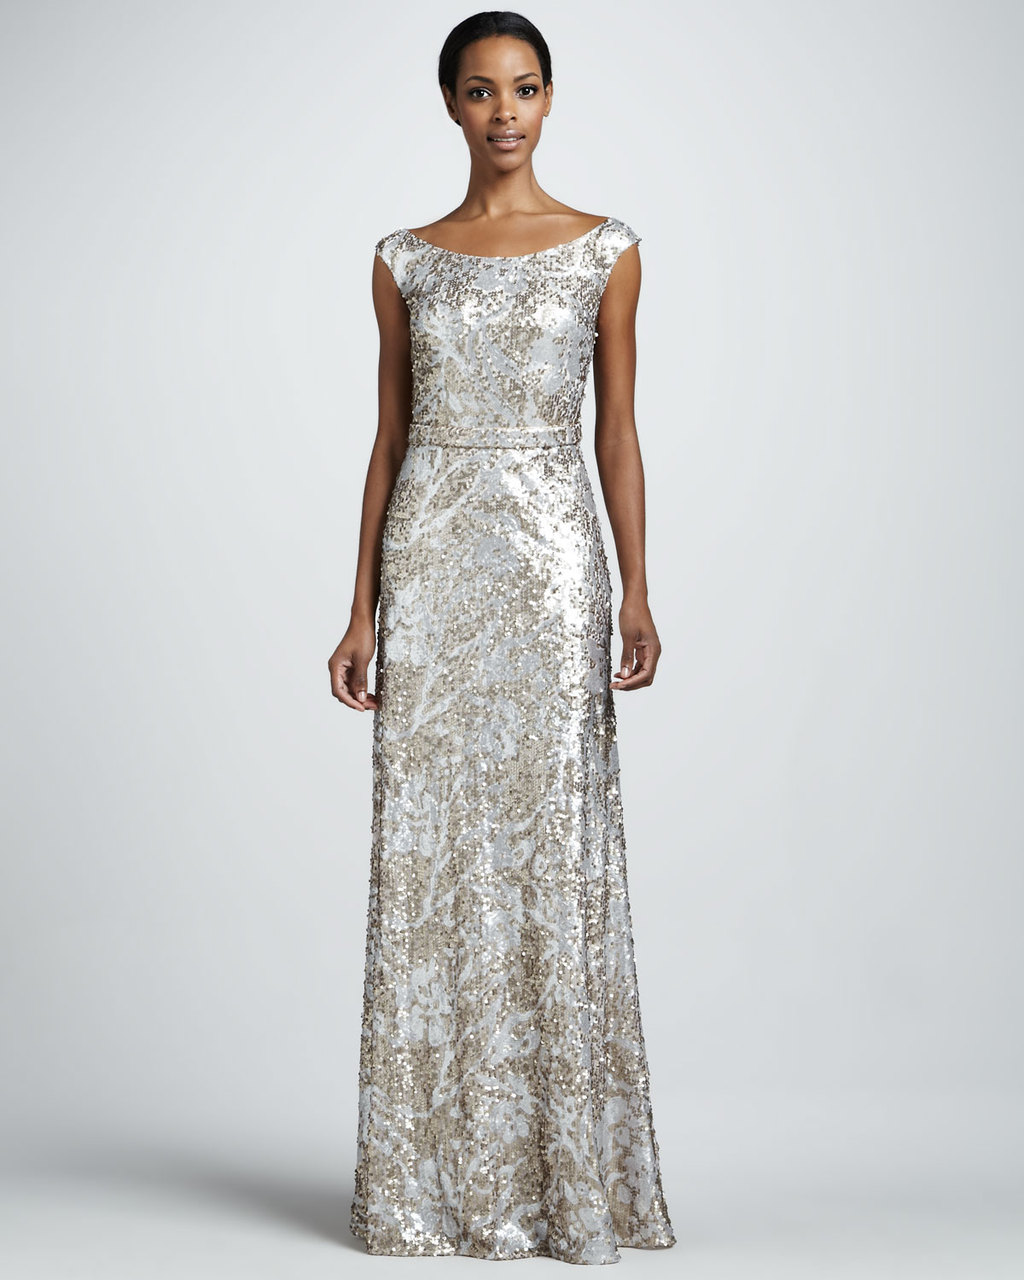 Champagne sequin long wedding guest dress silver champagne sequin long wedding guest dress ombrellifo Gallery